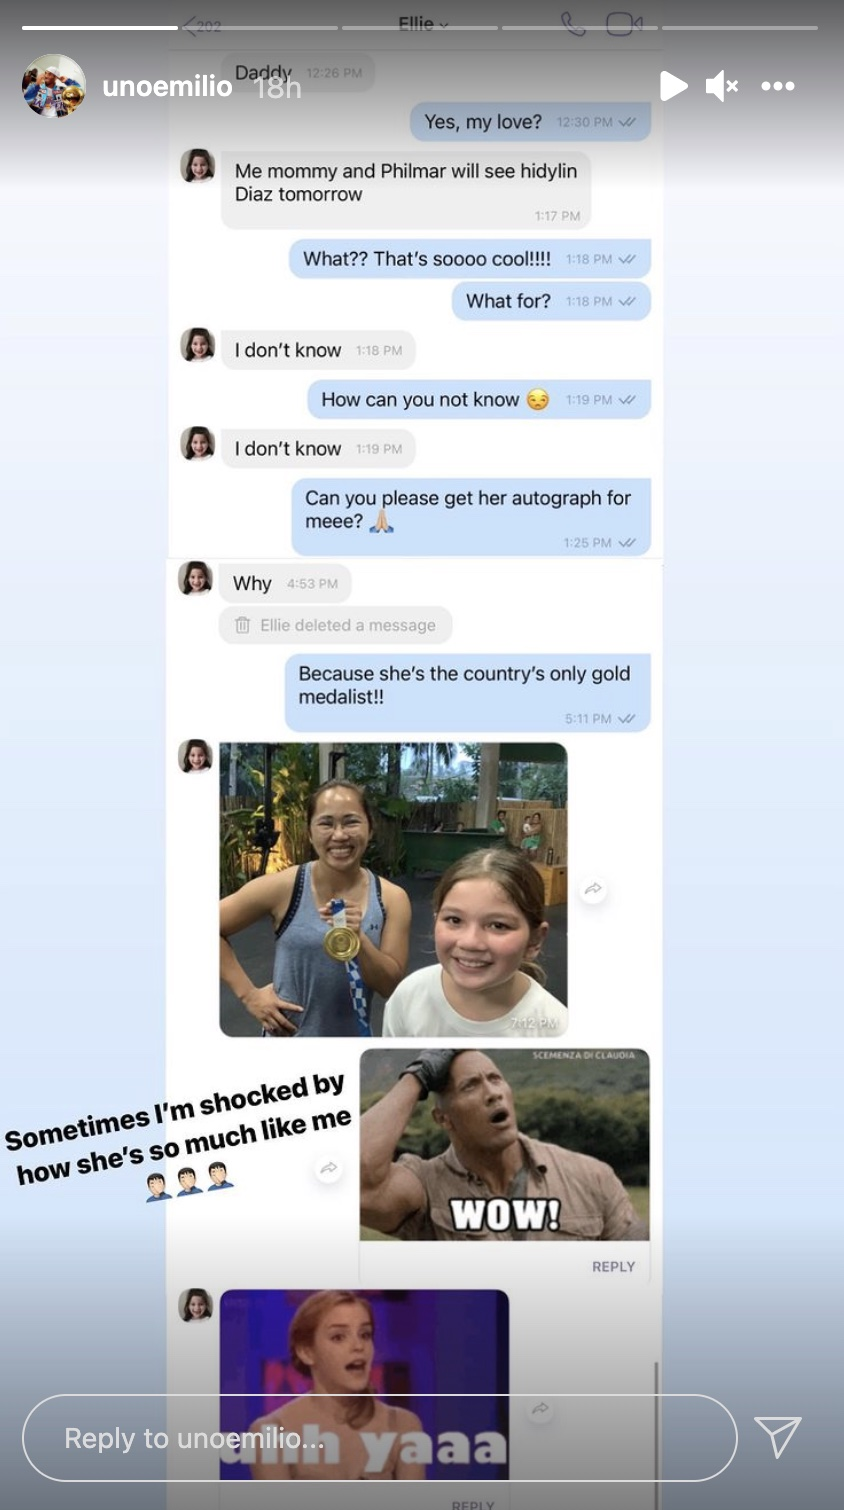 Jake Ejercito's IG Stories of his convo with Ellie Eigenmann about asking for an autograph with Hidilyn Diaz